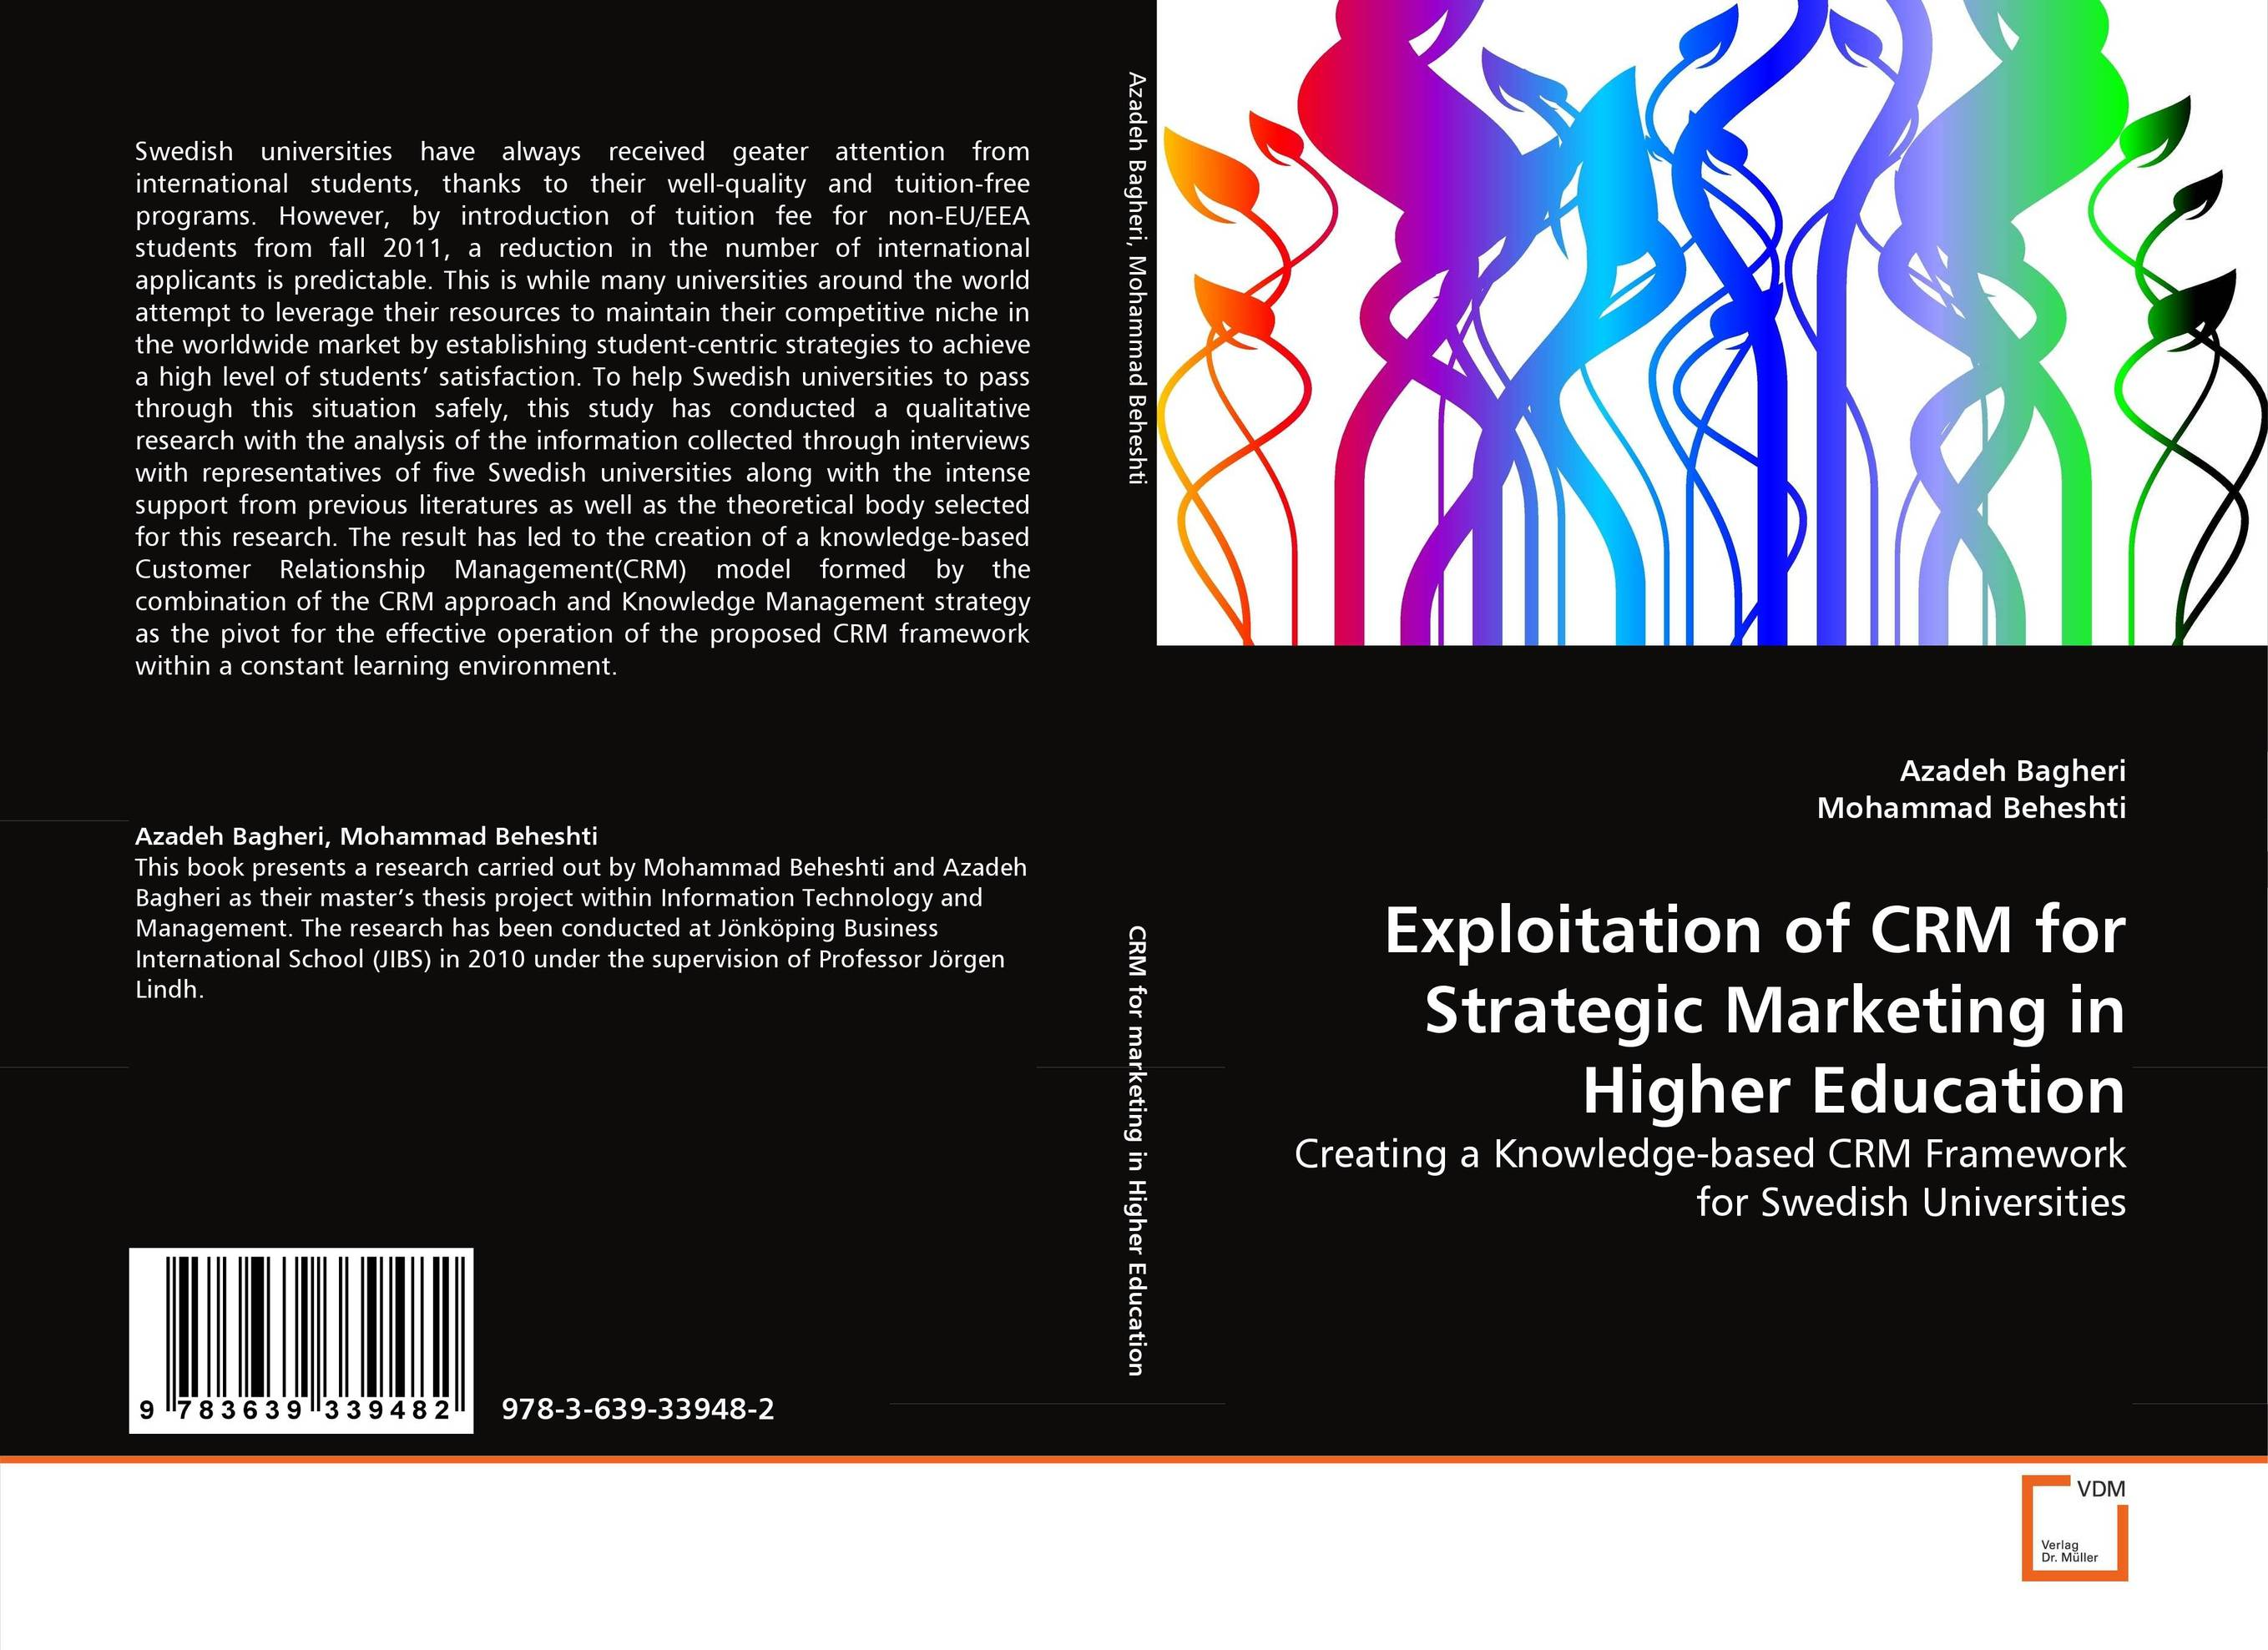 Exploitation of CRM for Strategic Marketing in Higher Education customer experience as a strategic differentiator